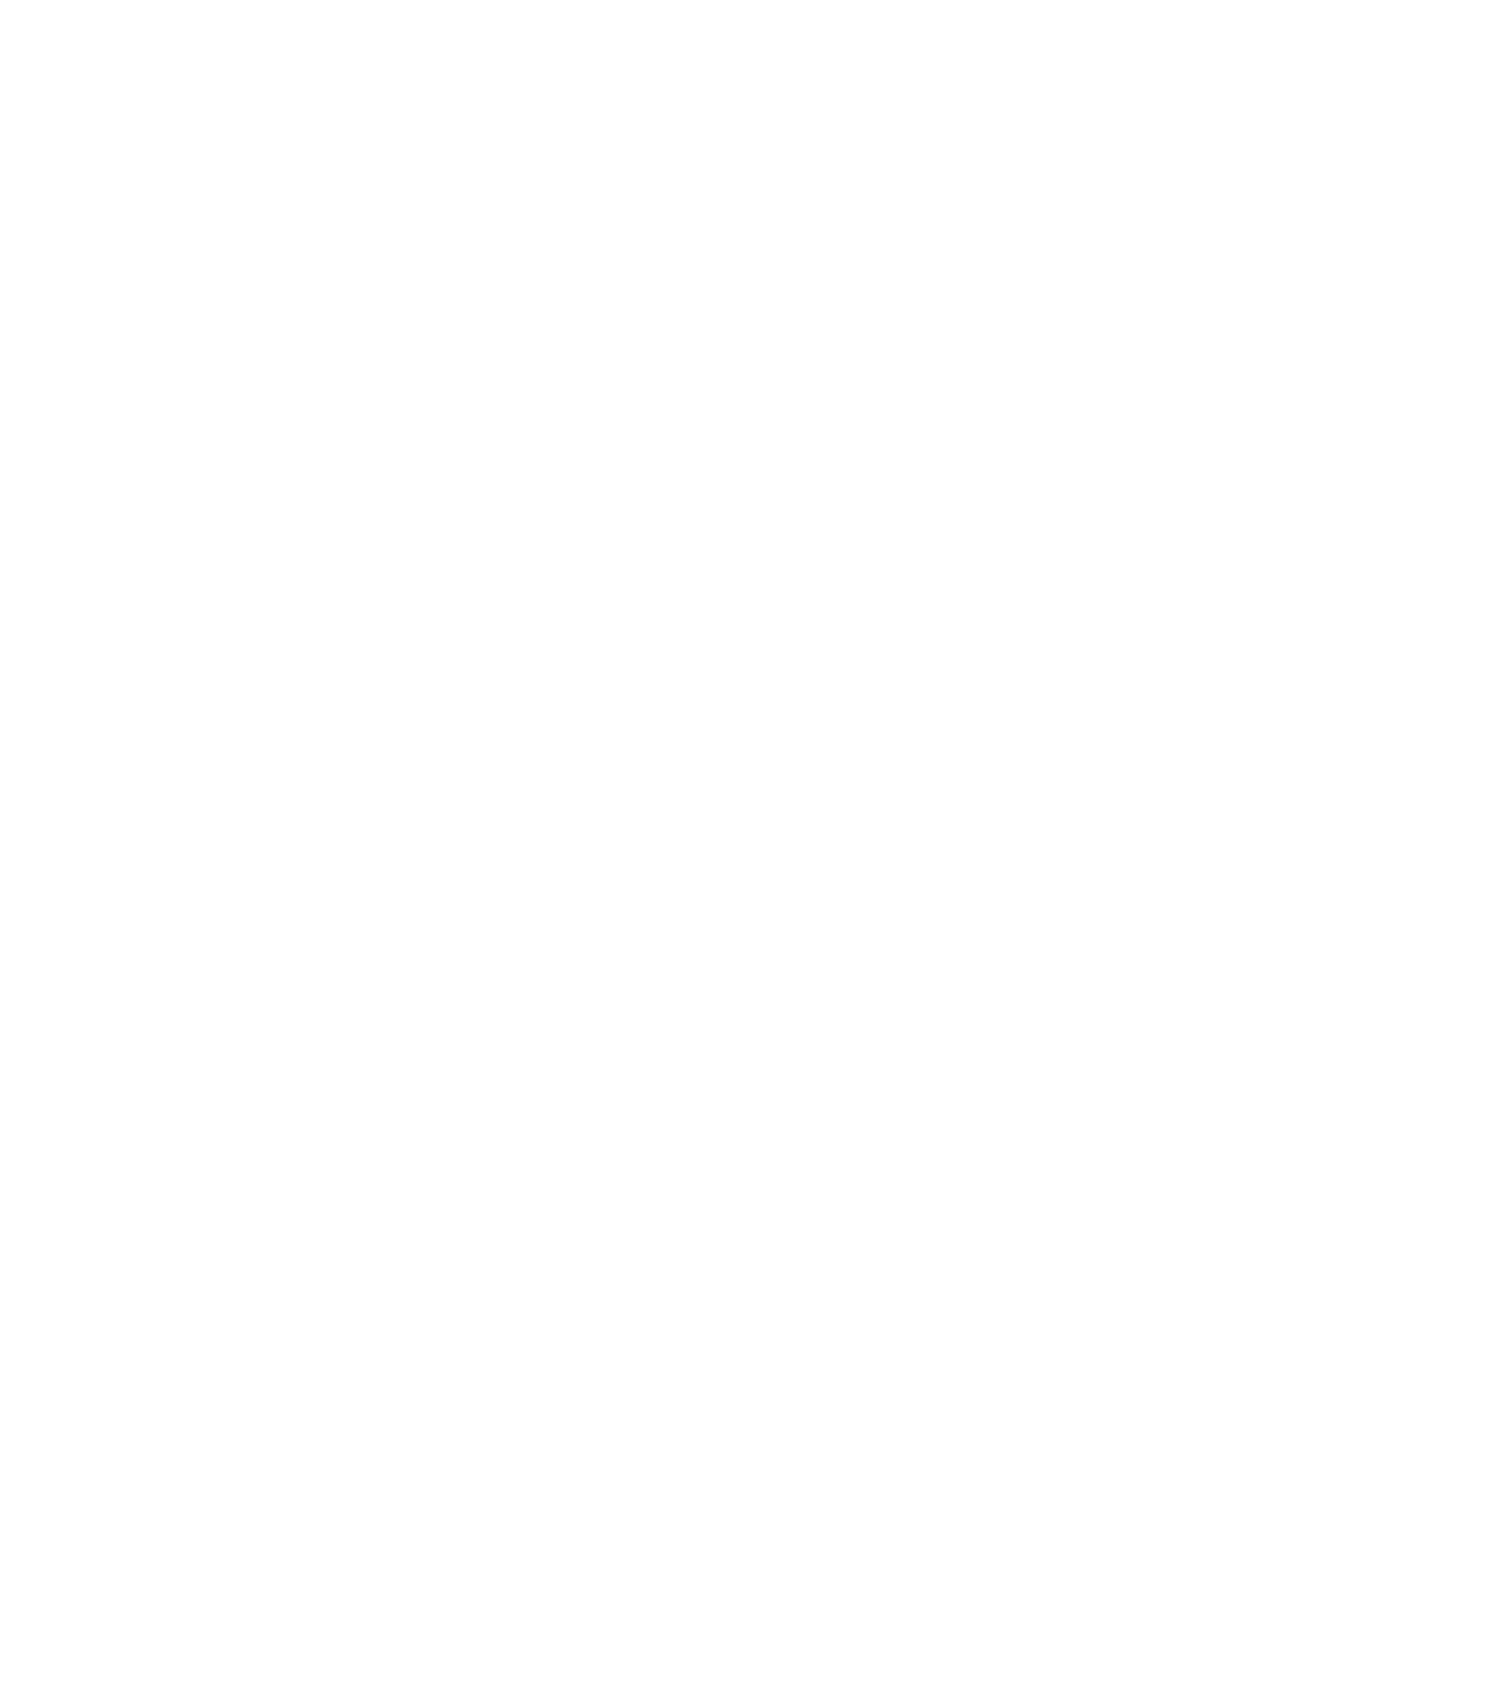 Hymas Family Lamb